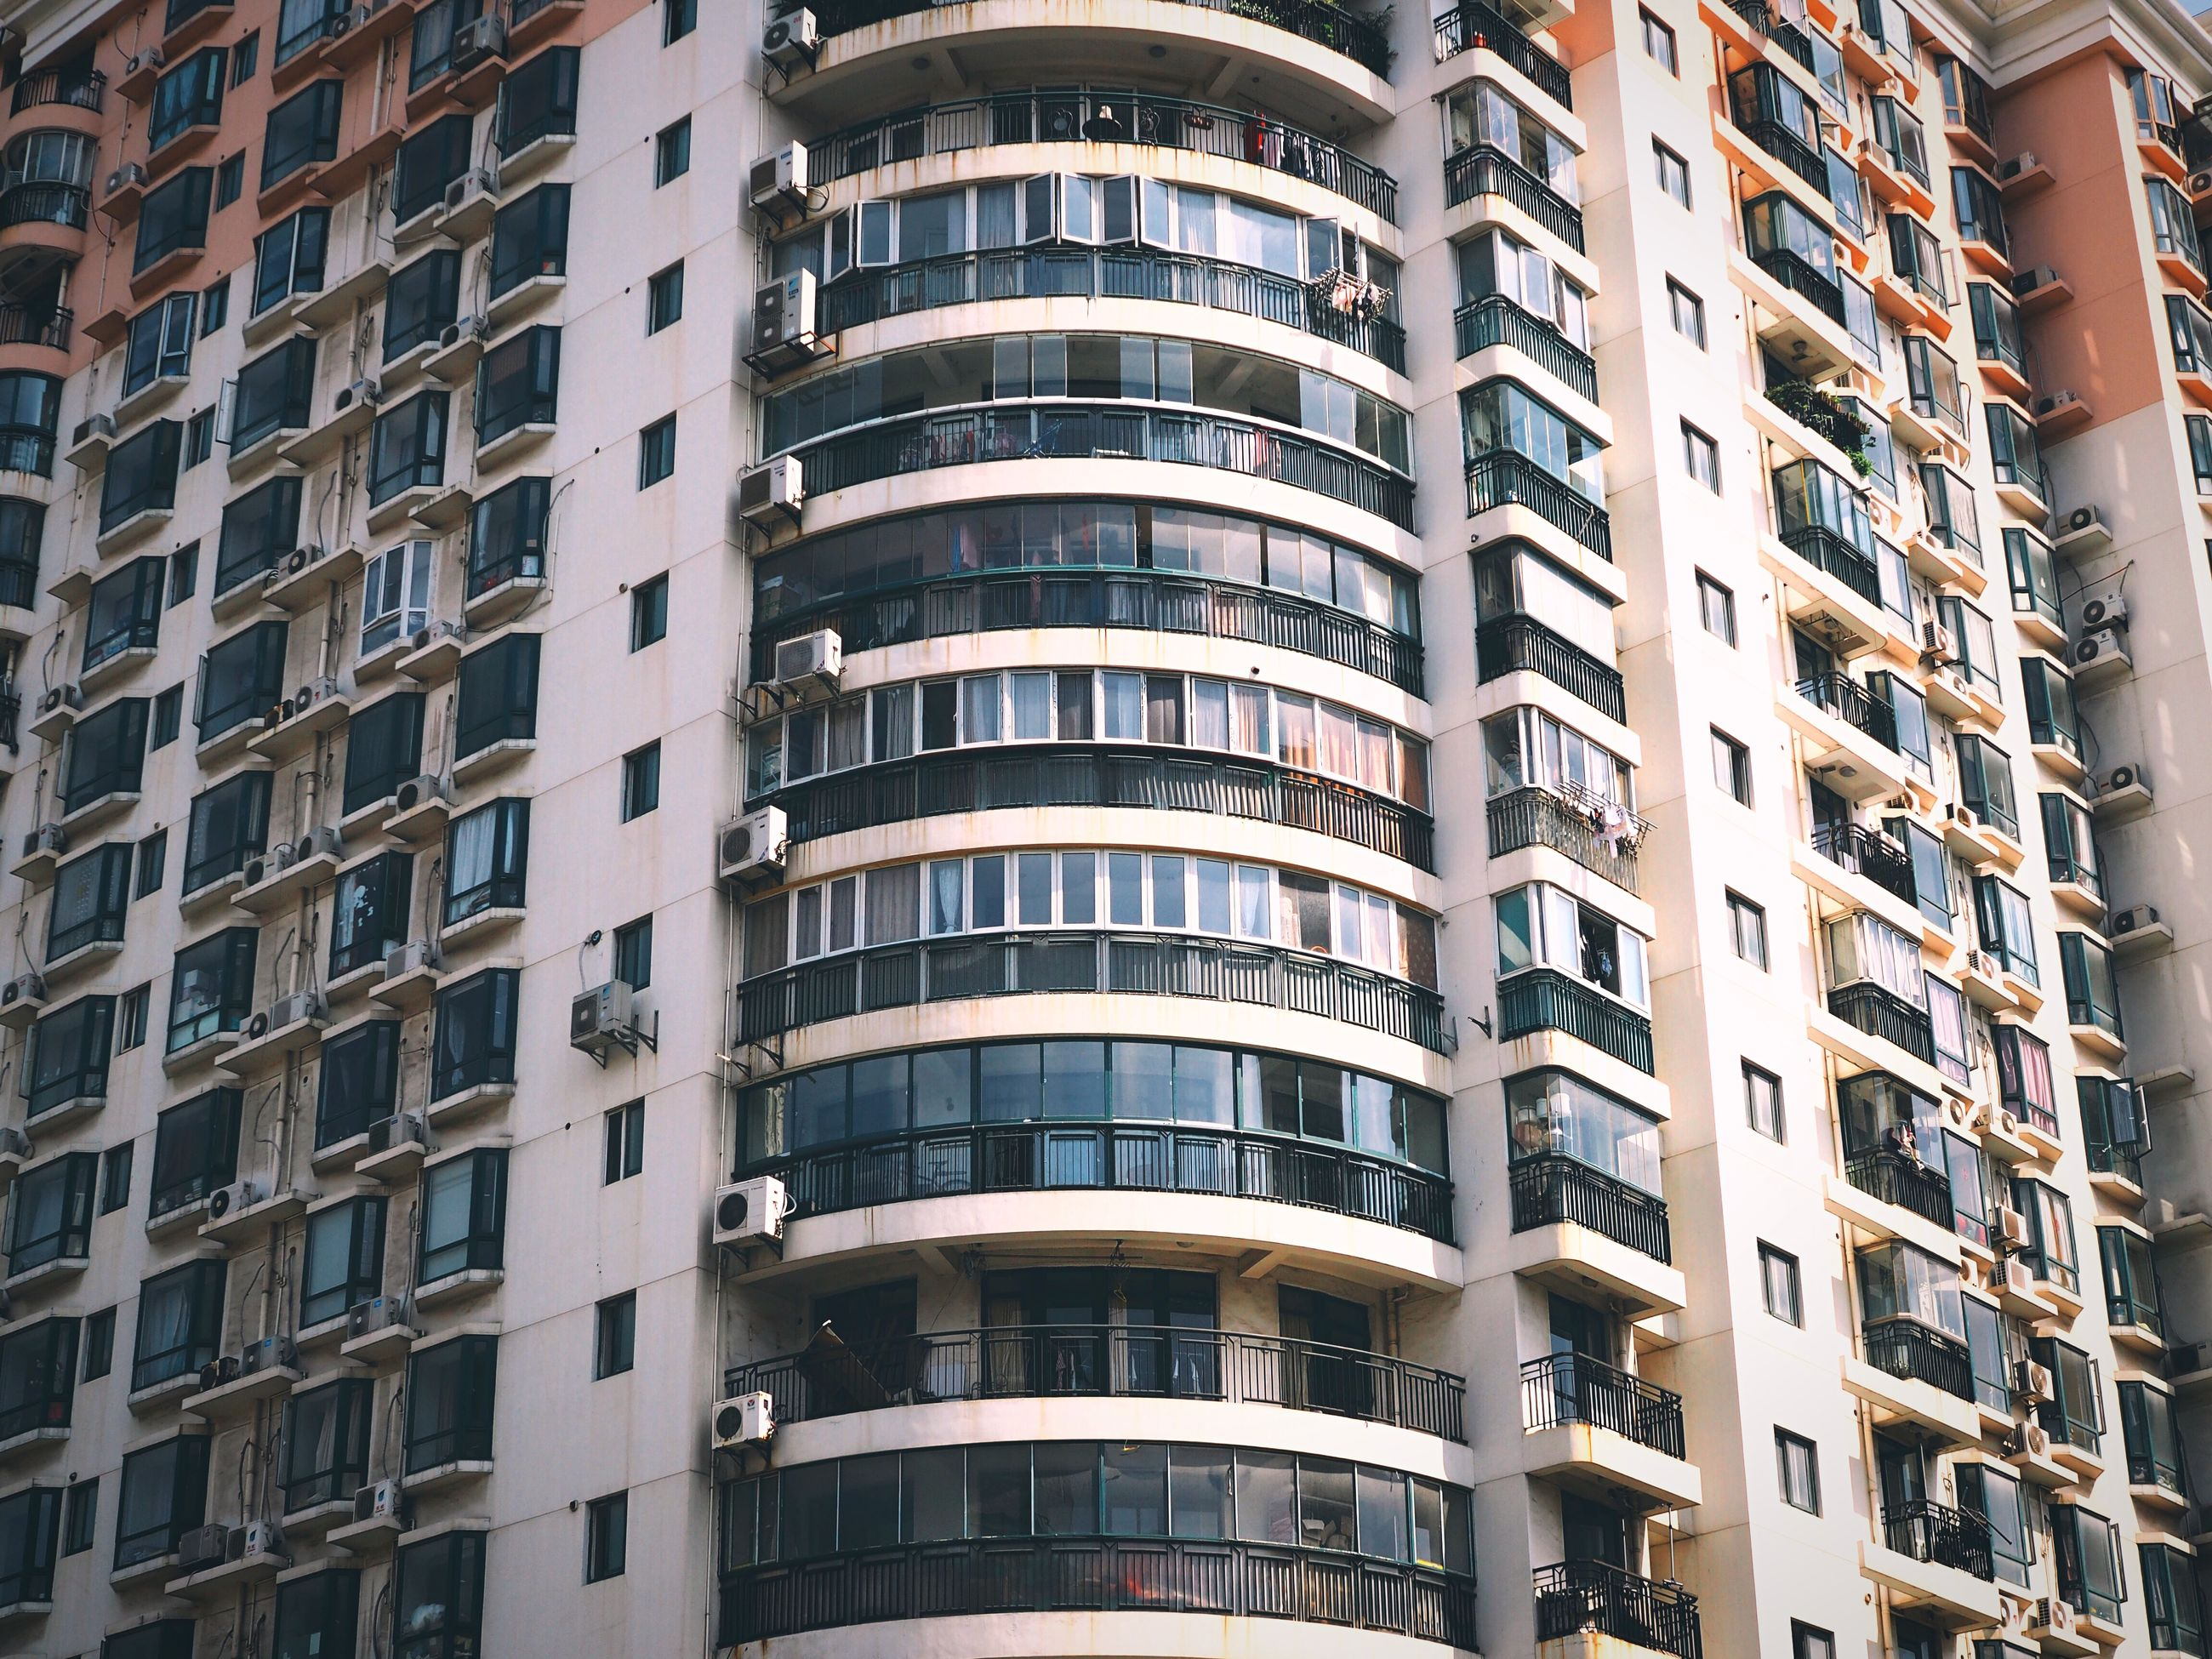 architecture, building exterior, built structure, window, city, low angle view, building, residential building, apartment, balcony, residential structure, repetition, full frame, modern, in a row, office building, backgrounds, city life, day, no people